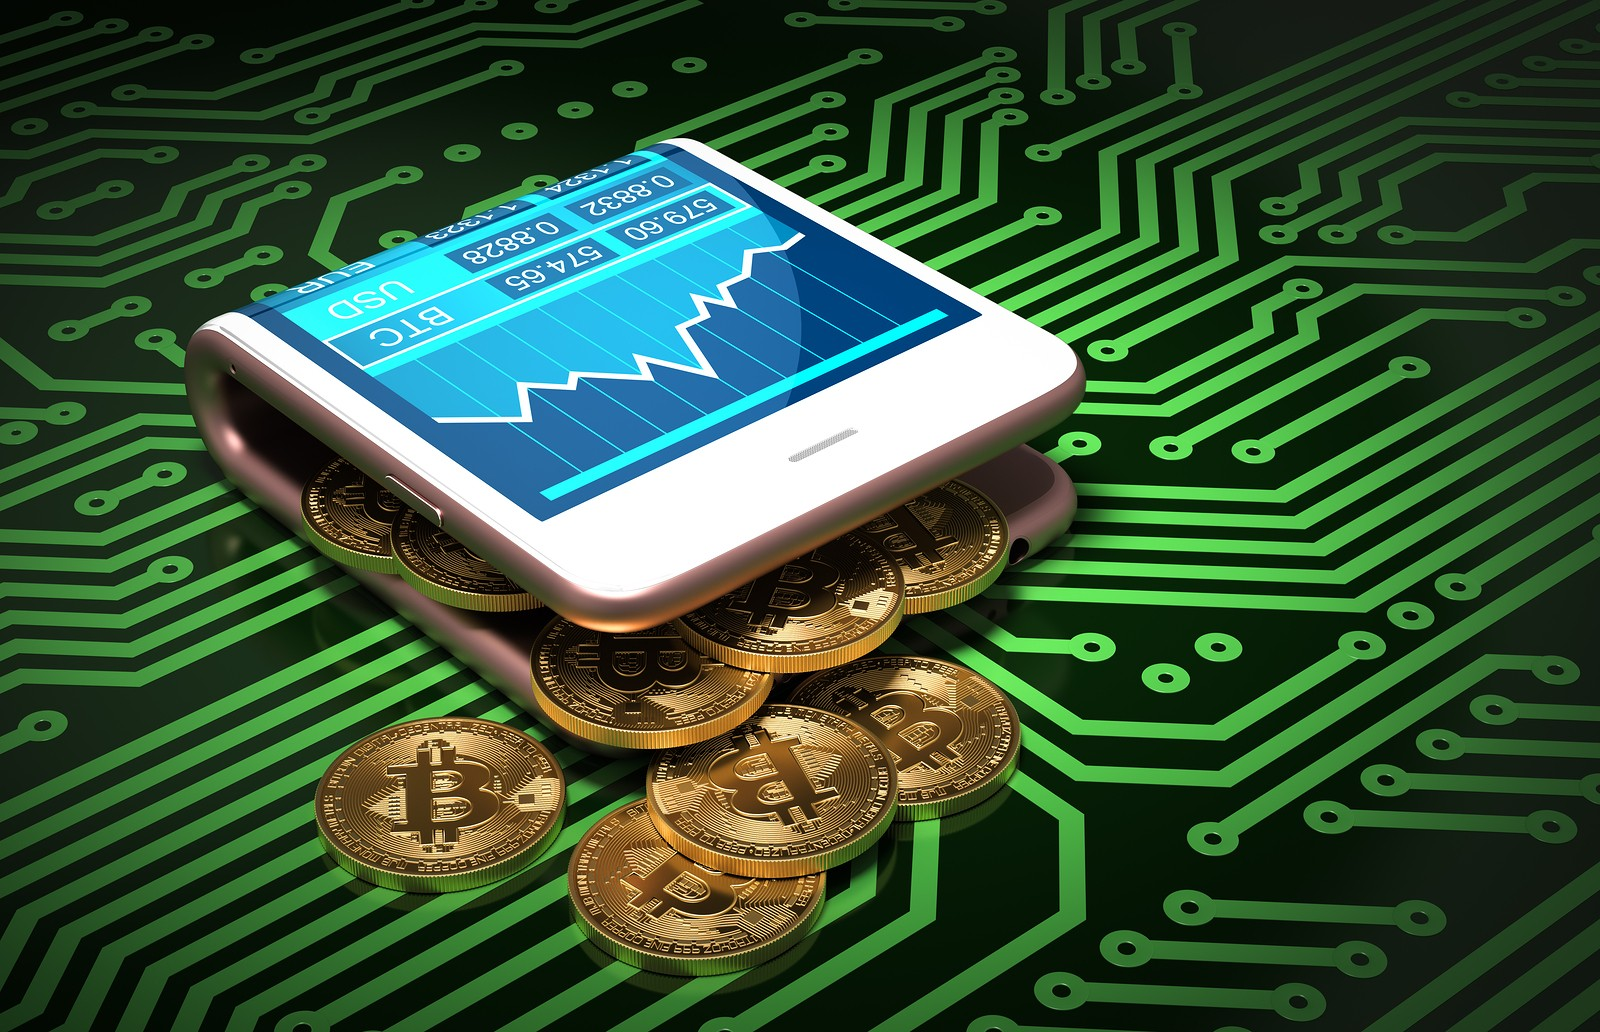 bitcoins in folded wallet smartphone